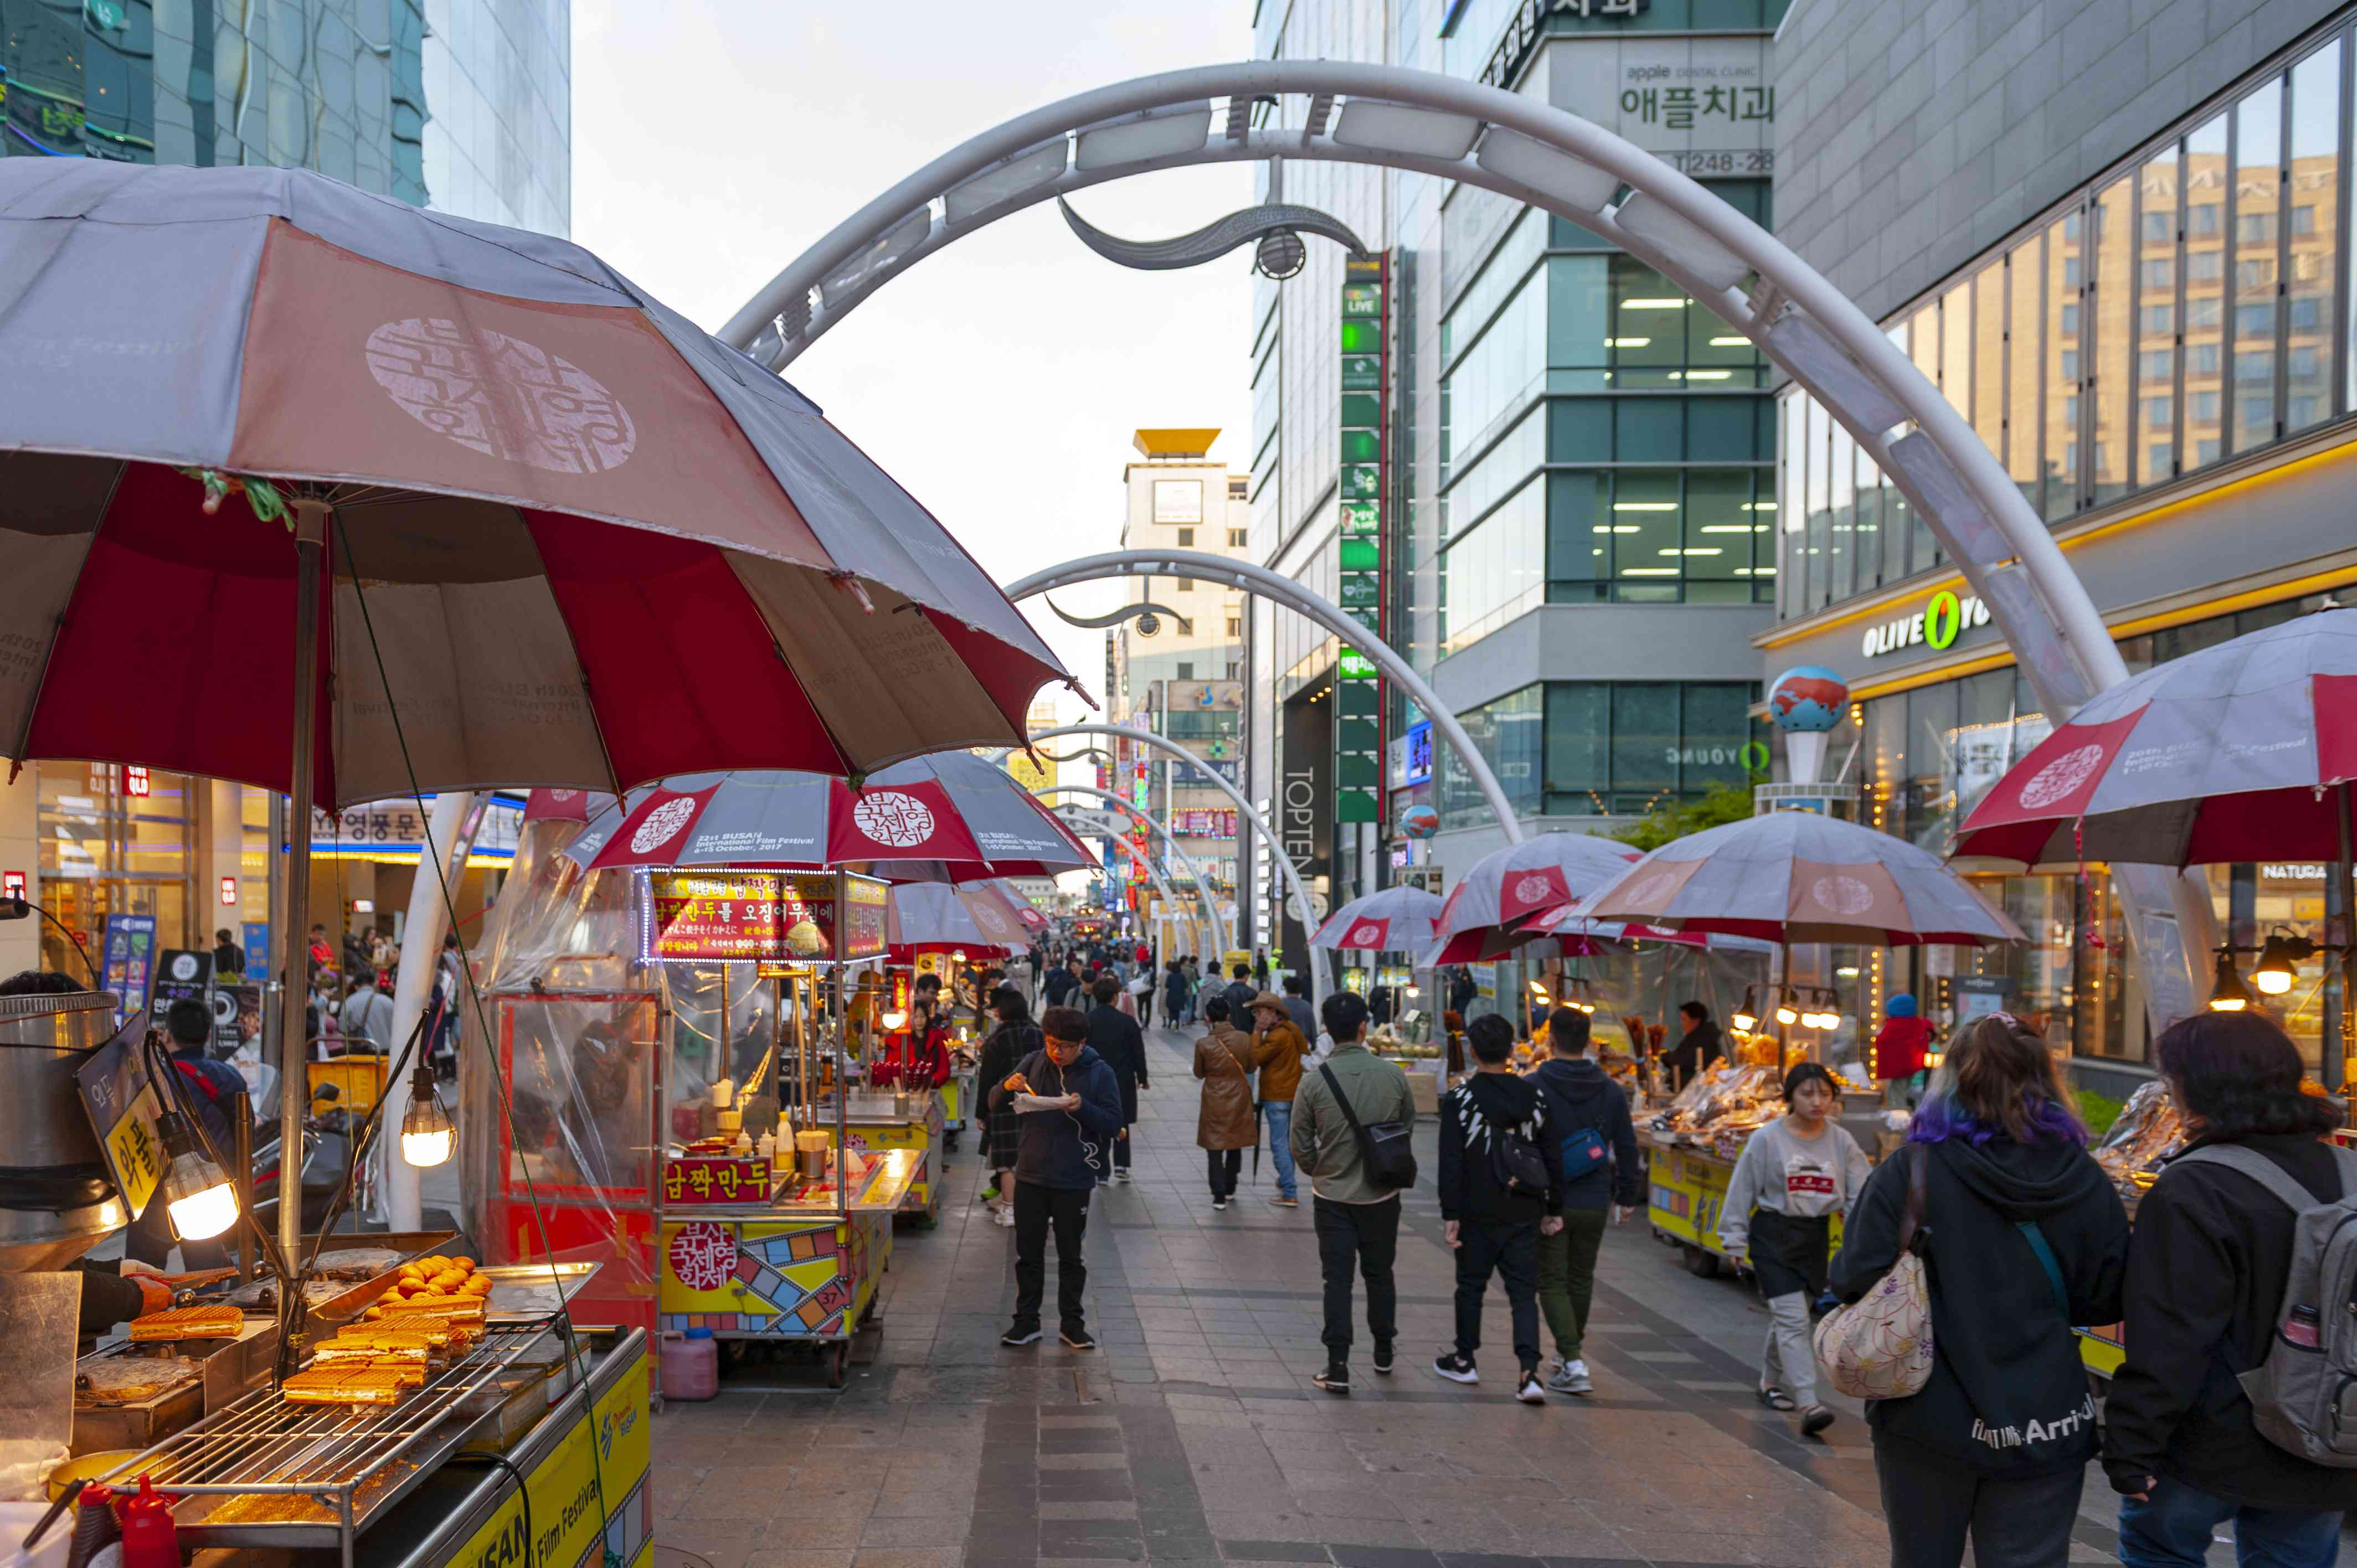 Wide walkway lined with street food carts in Busan